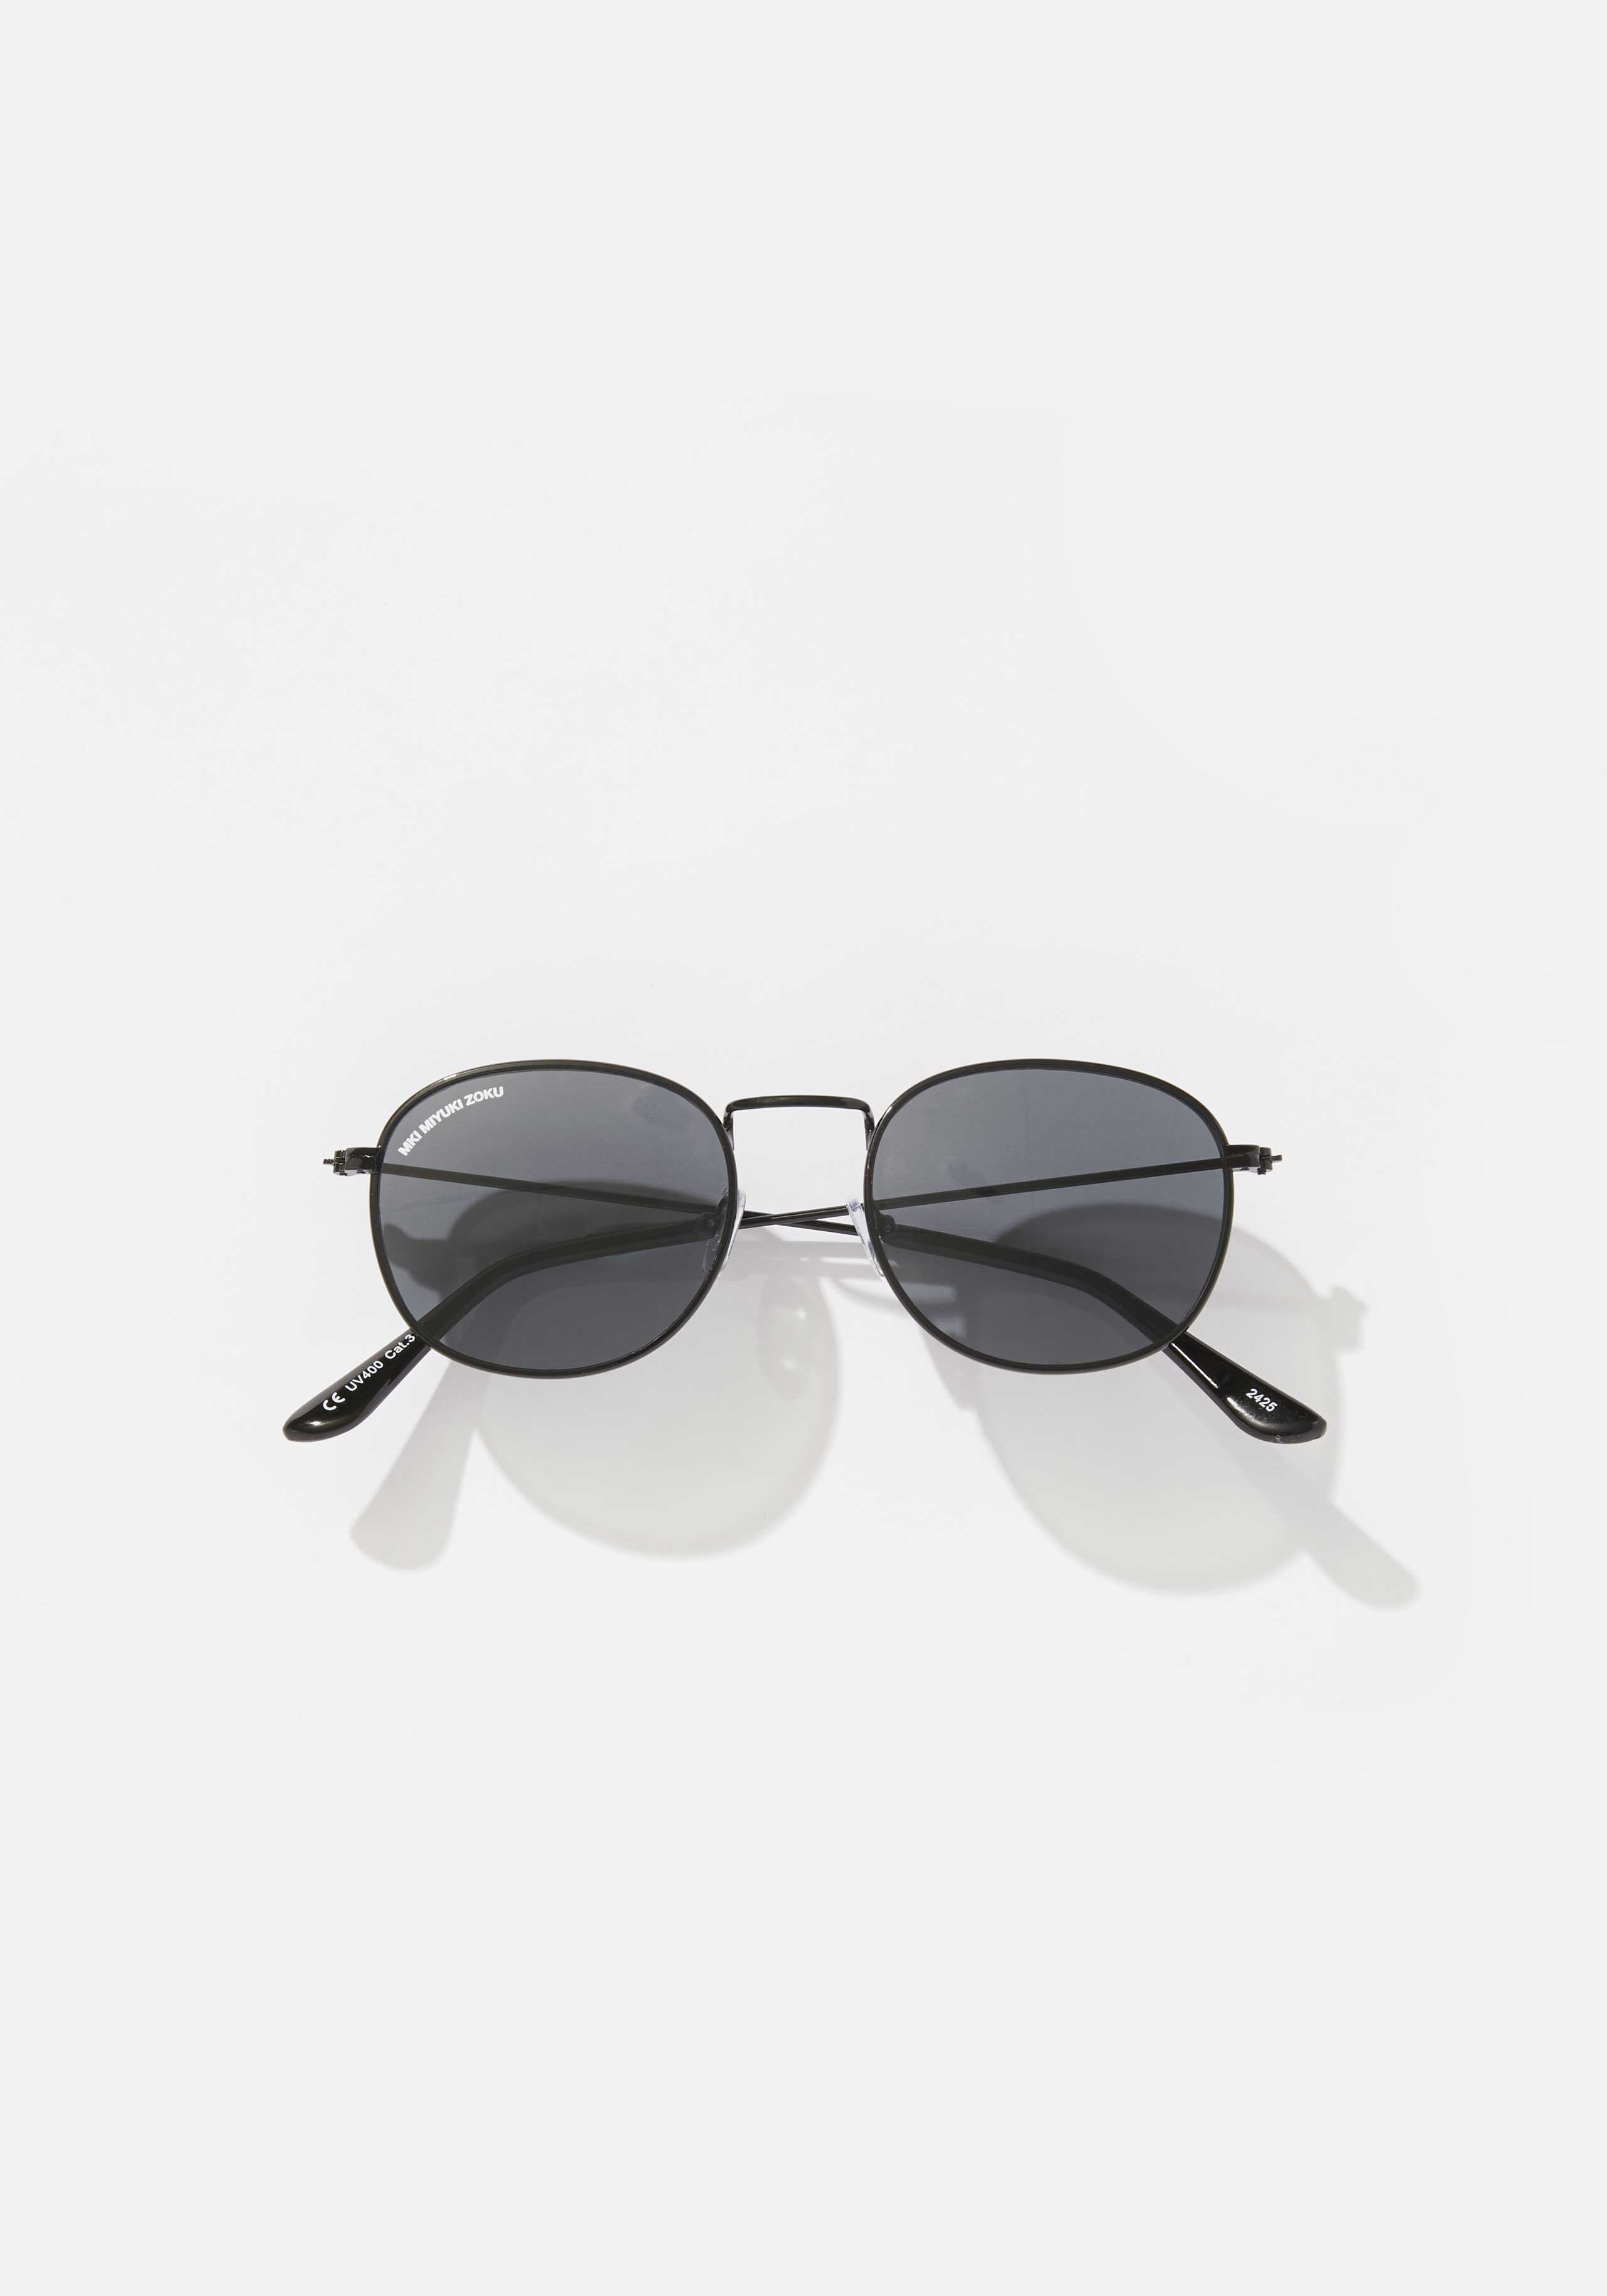 mki metal round sunglasses 1